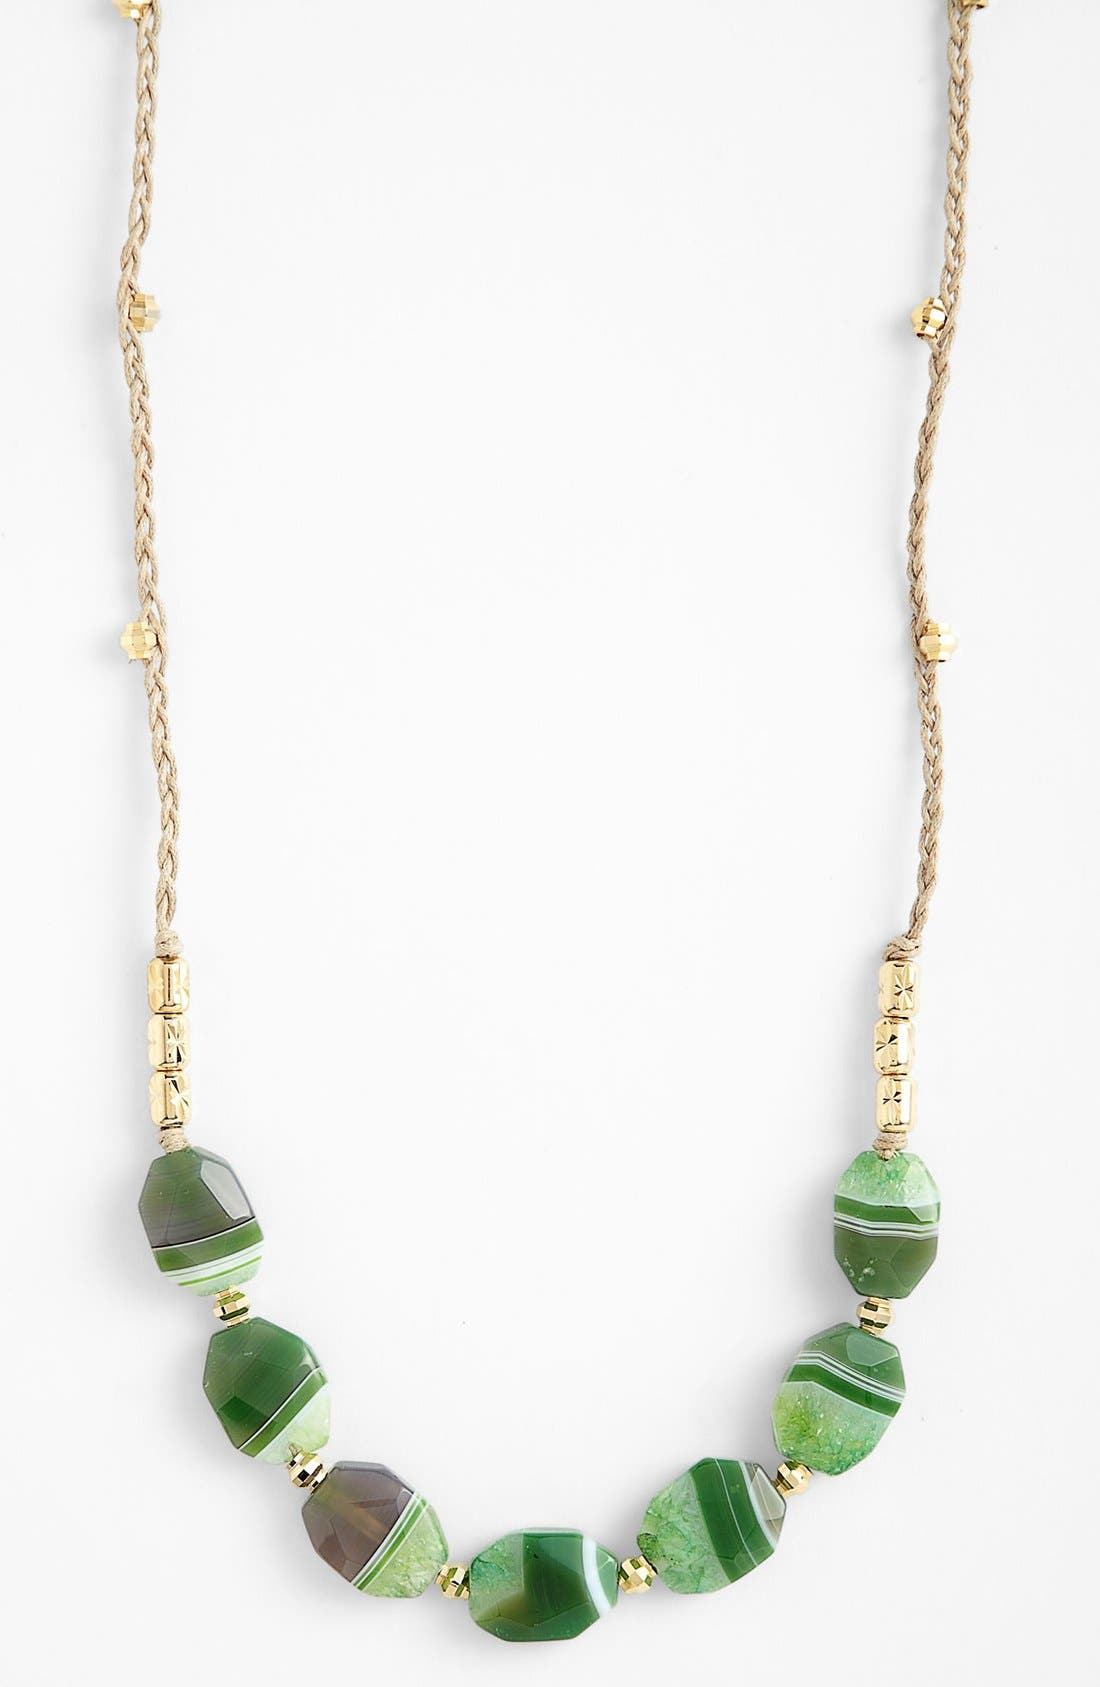 Main Image - Nordstrom 'Grotto' Long Frontal Necklace